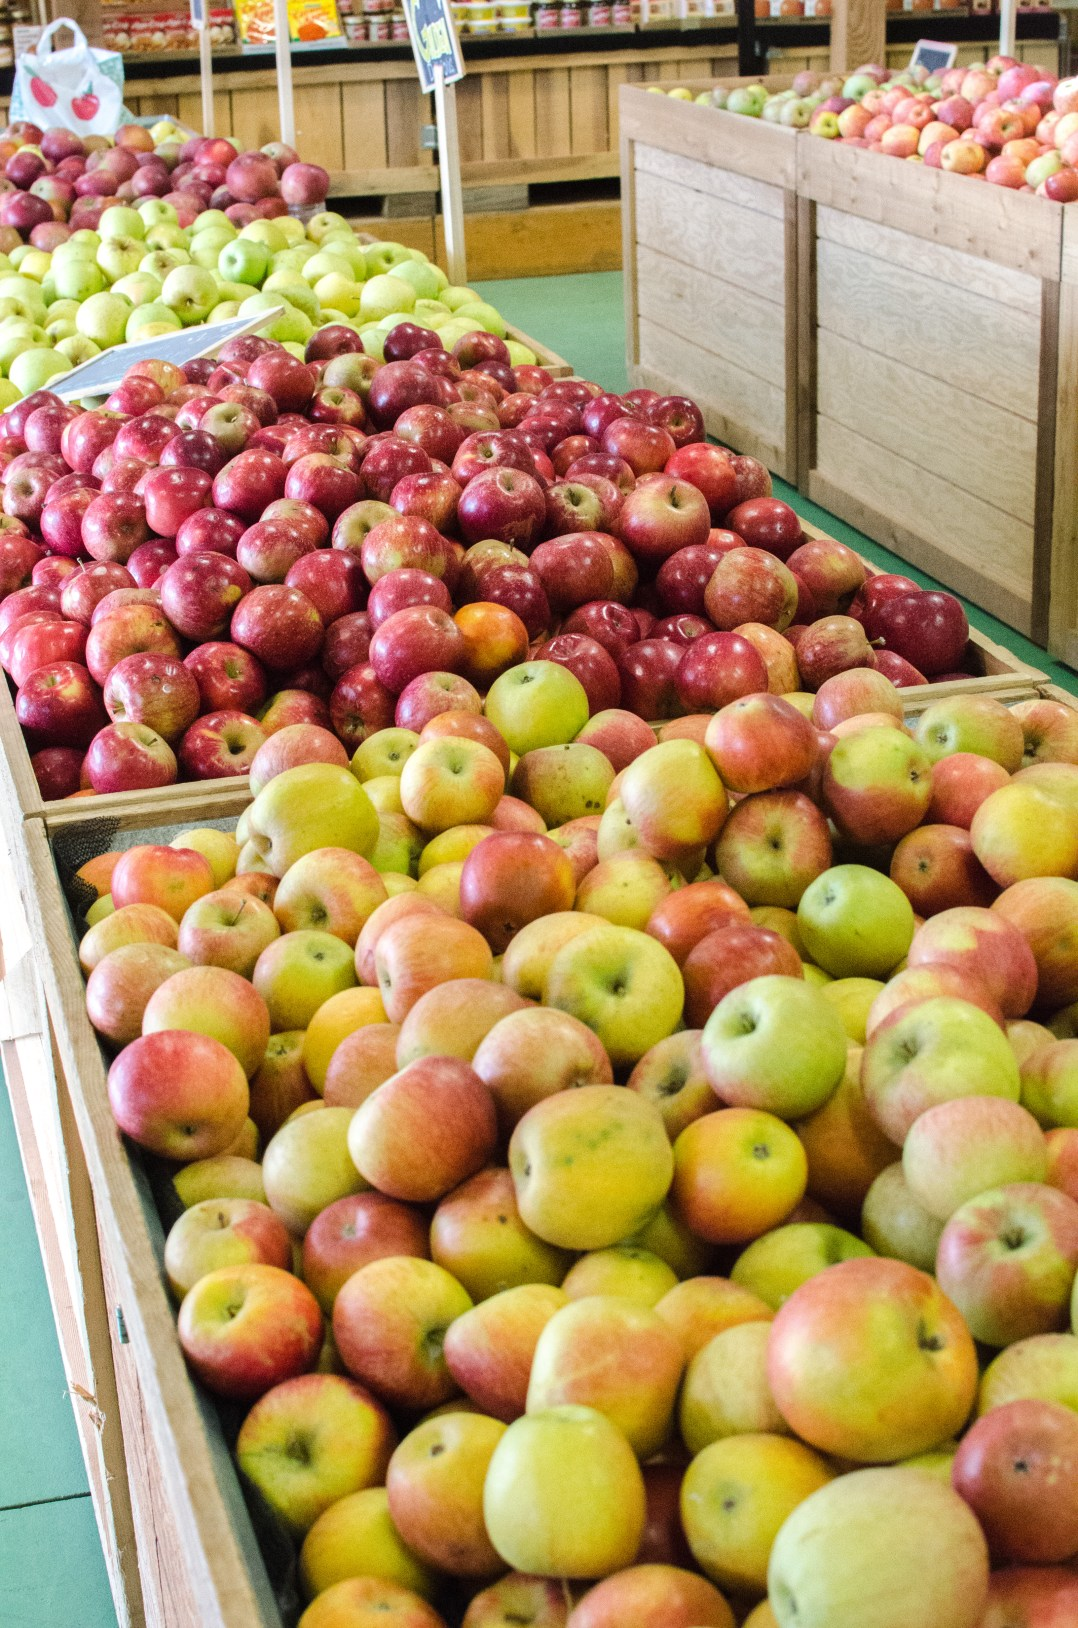 It's almost like fall exploded all over my blog, since everything I've been sharing you with y'all relates to fall in some way. What could be more fall like than going to an orchard to pick your own apples?!? That's exactly what my husband and I did a few weekends ago! Eckert's Boyd Orchard invited me to come check it out, and I was so excited, because I always had planned on going, but just never have! Eckert's Boyd Orchard is located in Versailles, Kentucky off of Pinckard Pike. The drive from Lexington to Eckert's Boyd Orchard takes you through some of the most gorgeous horse farms that you'll ever see. It's hard to believe scenery like that is located just minutes away from Lexington.